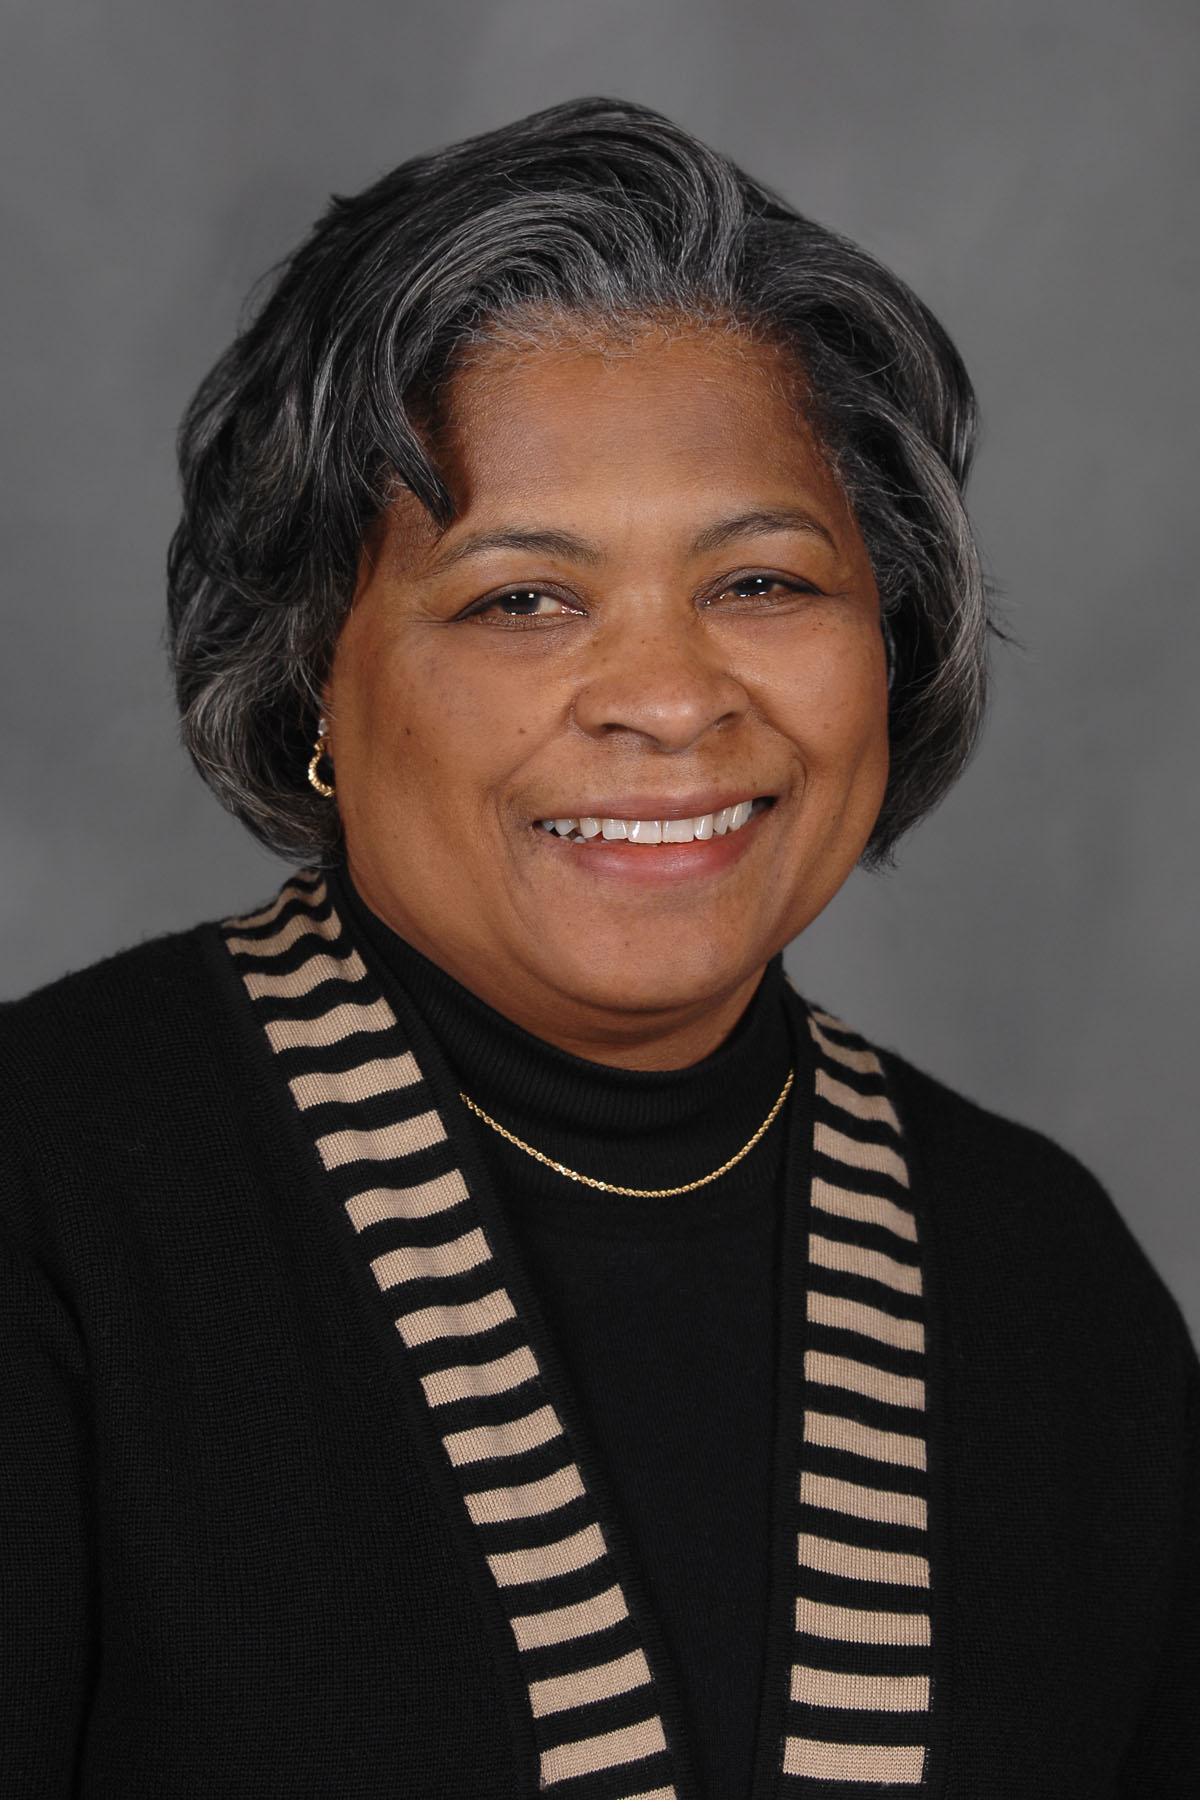 Dr. Barbara Broome